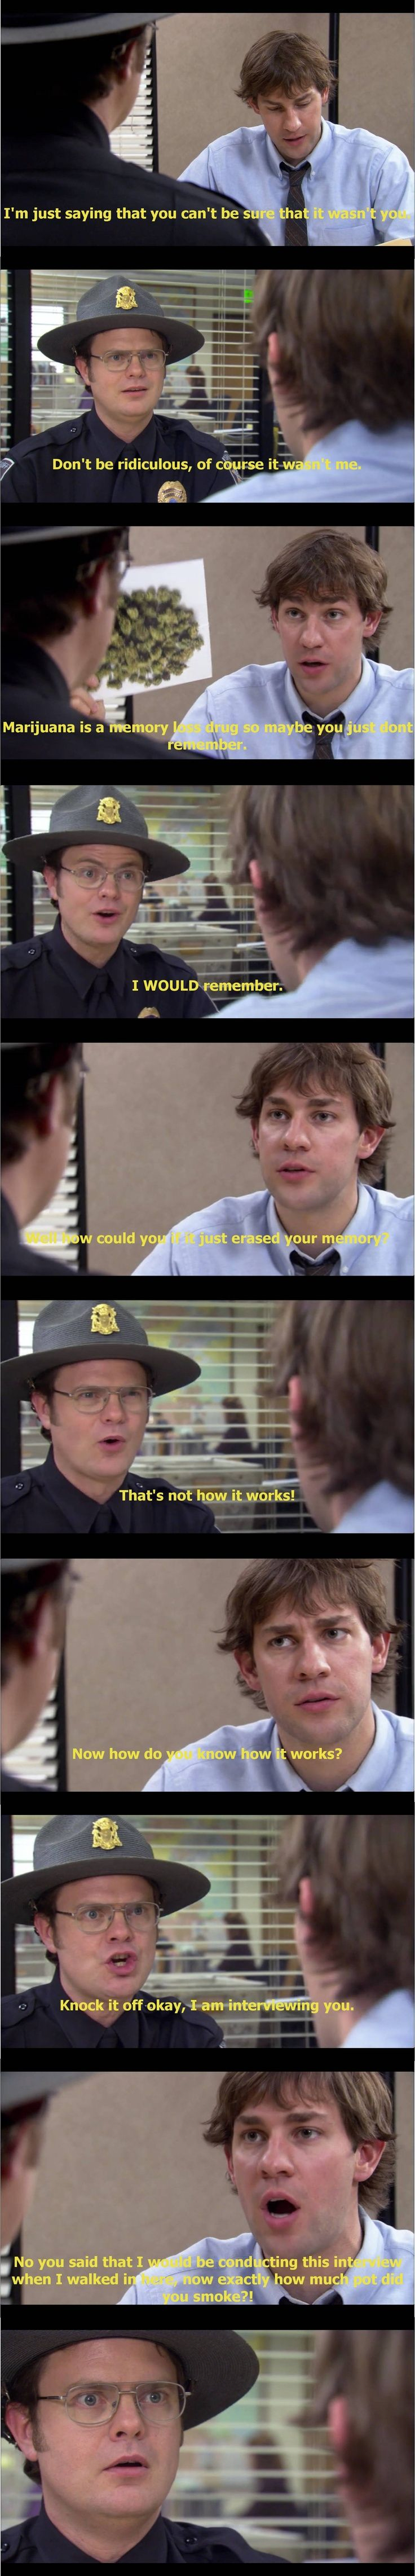 116 best the office images on pinterest dunder mifflin funny